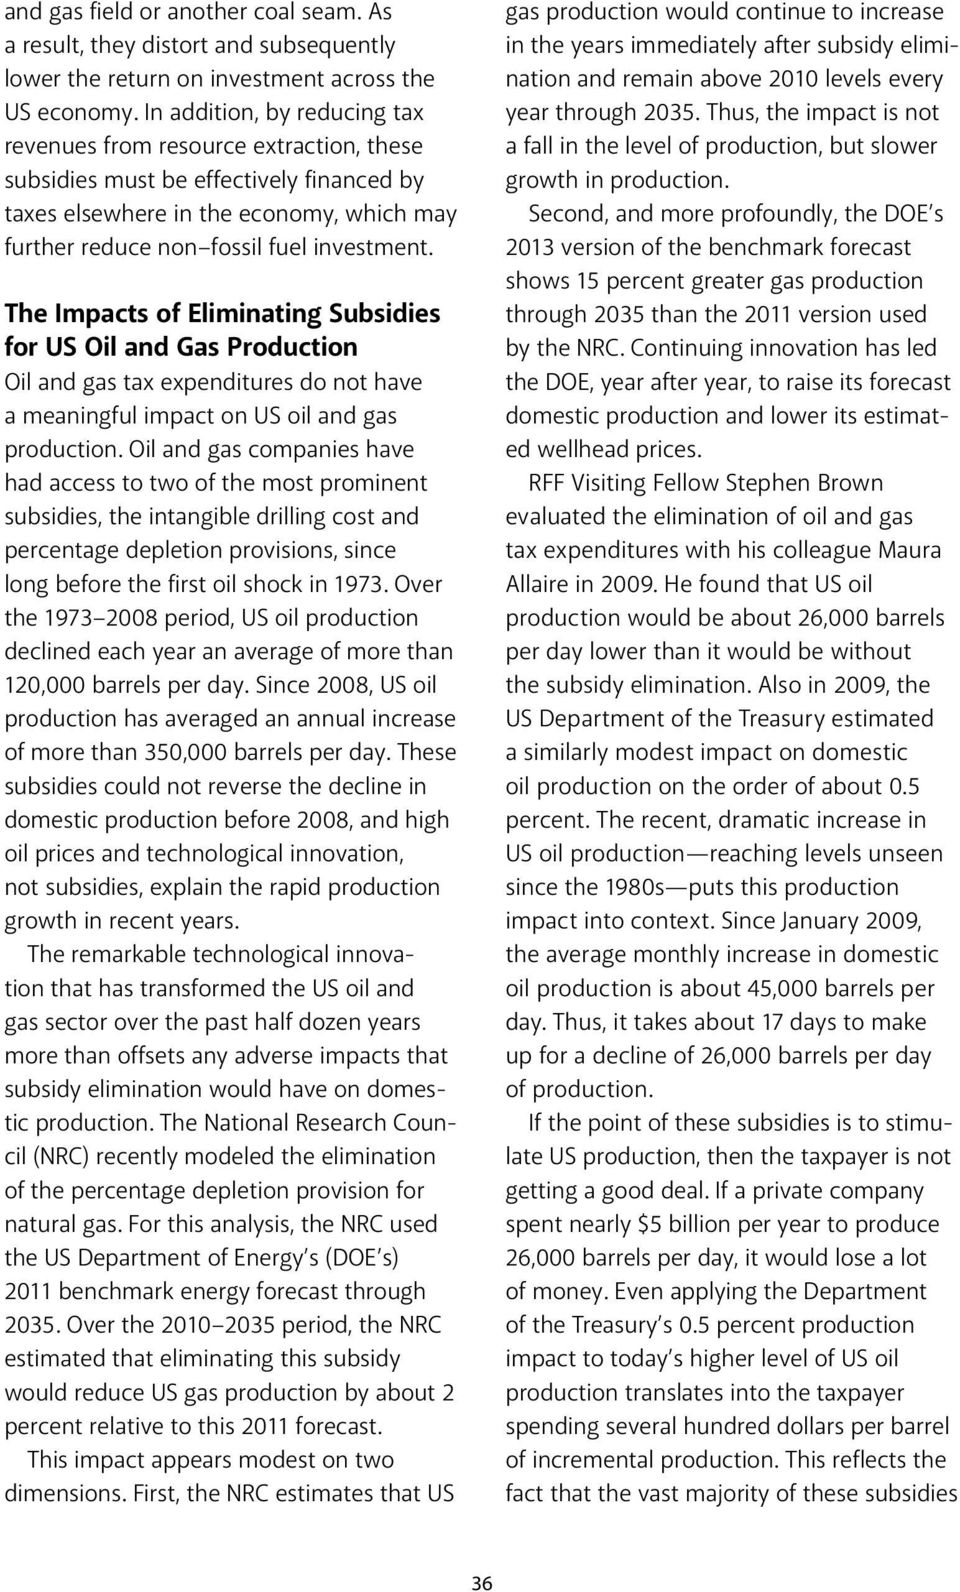 The Impacts of Eliminating Subsidies for US Oil and Gas Production Oil and gas tax expenditures do not have a meaningful impact on US oil and gas production.